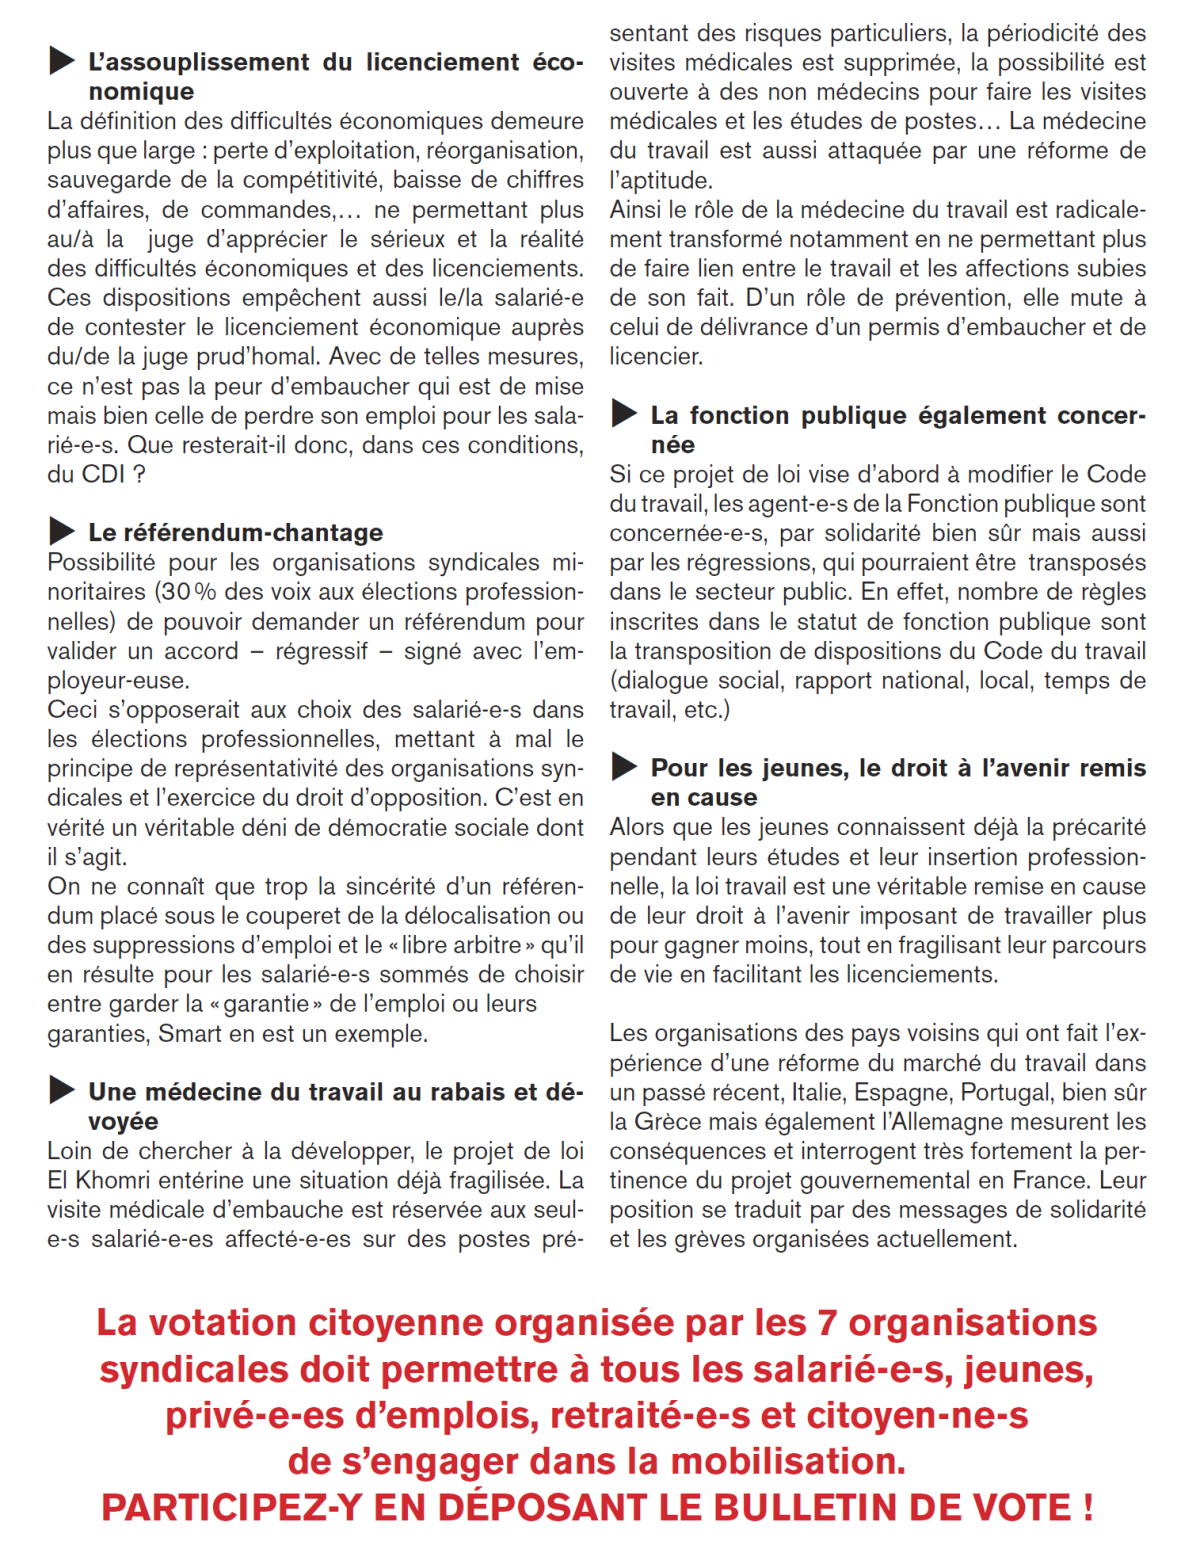 Tract national intersyndical pour la votation citoyenne